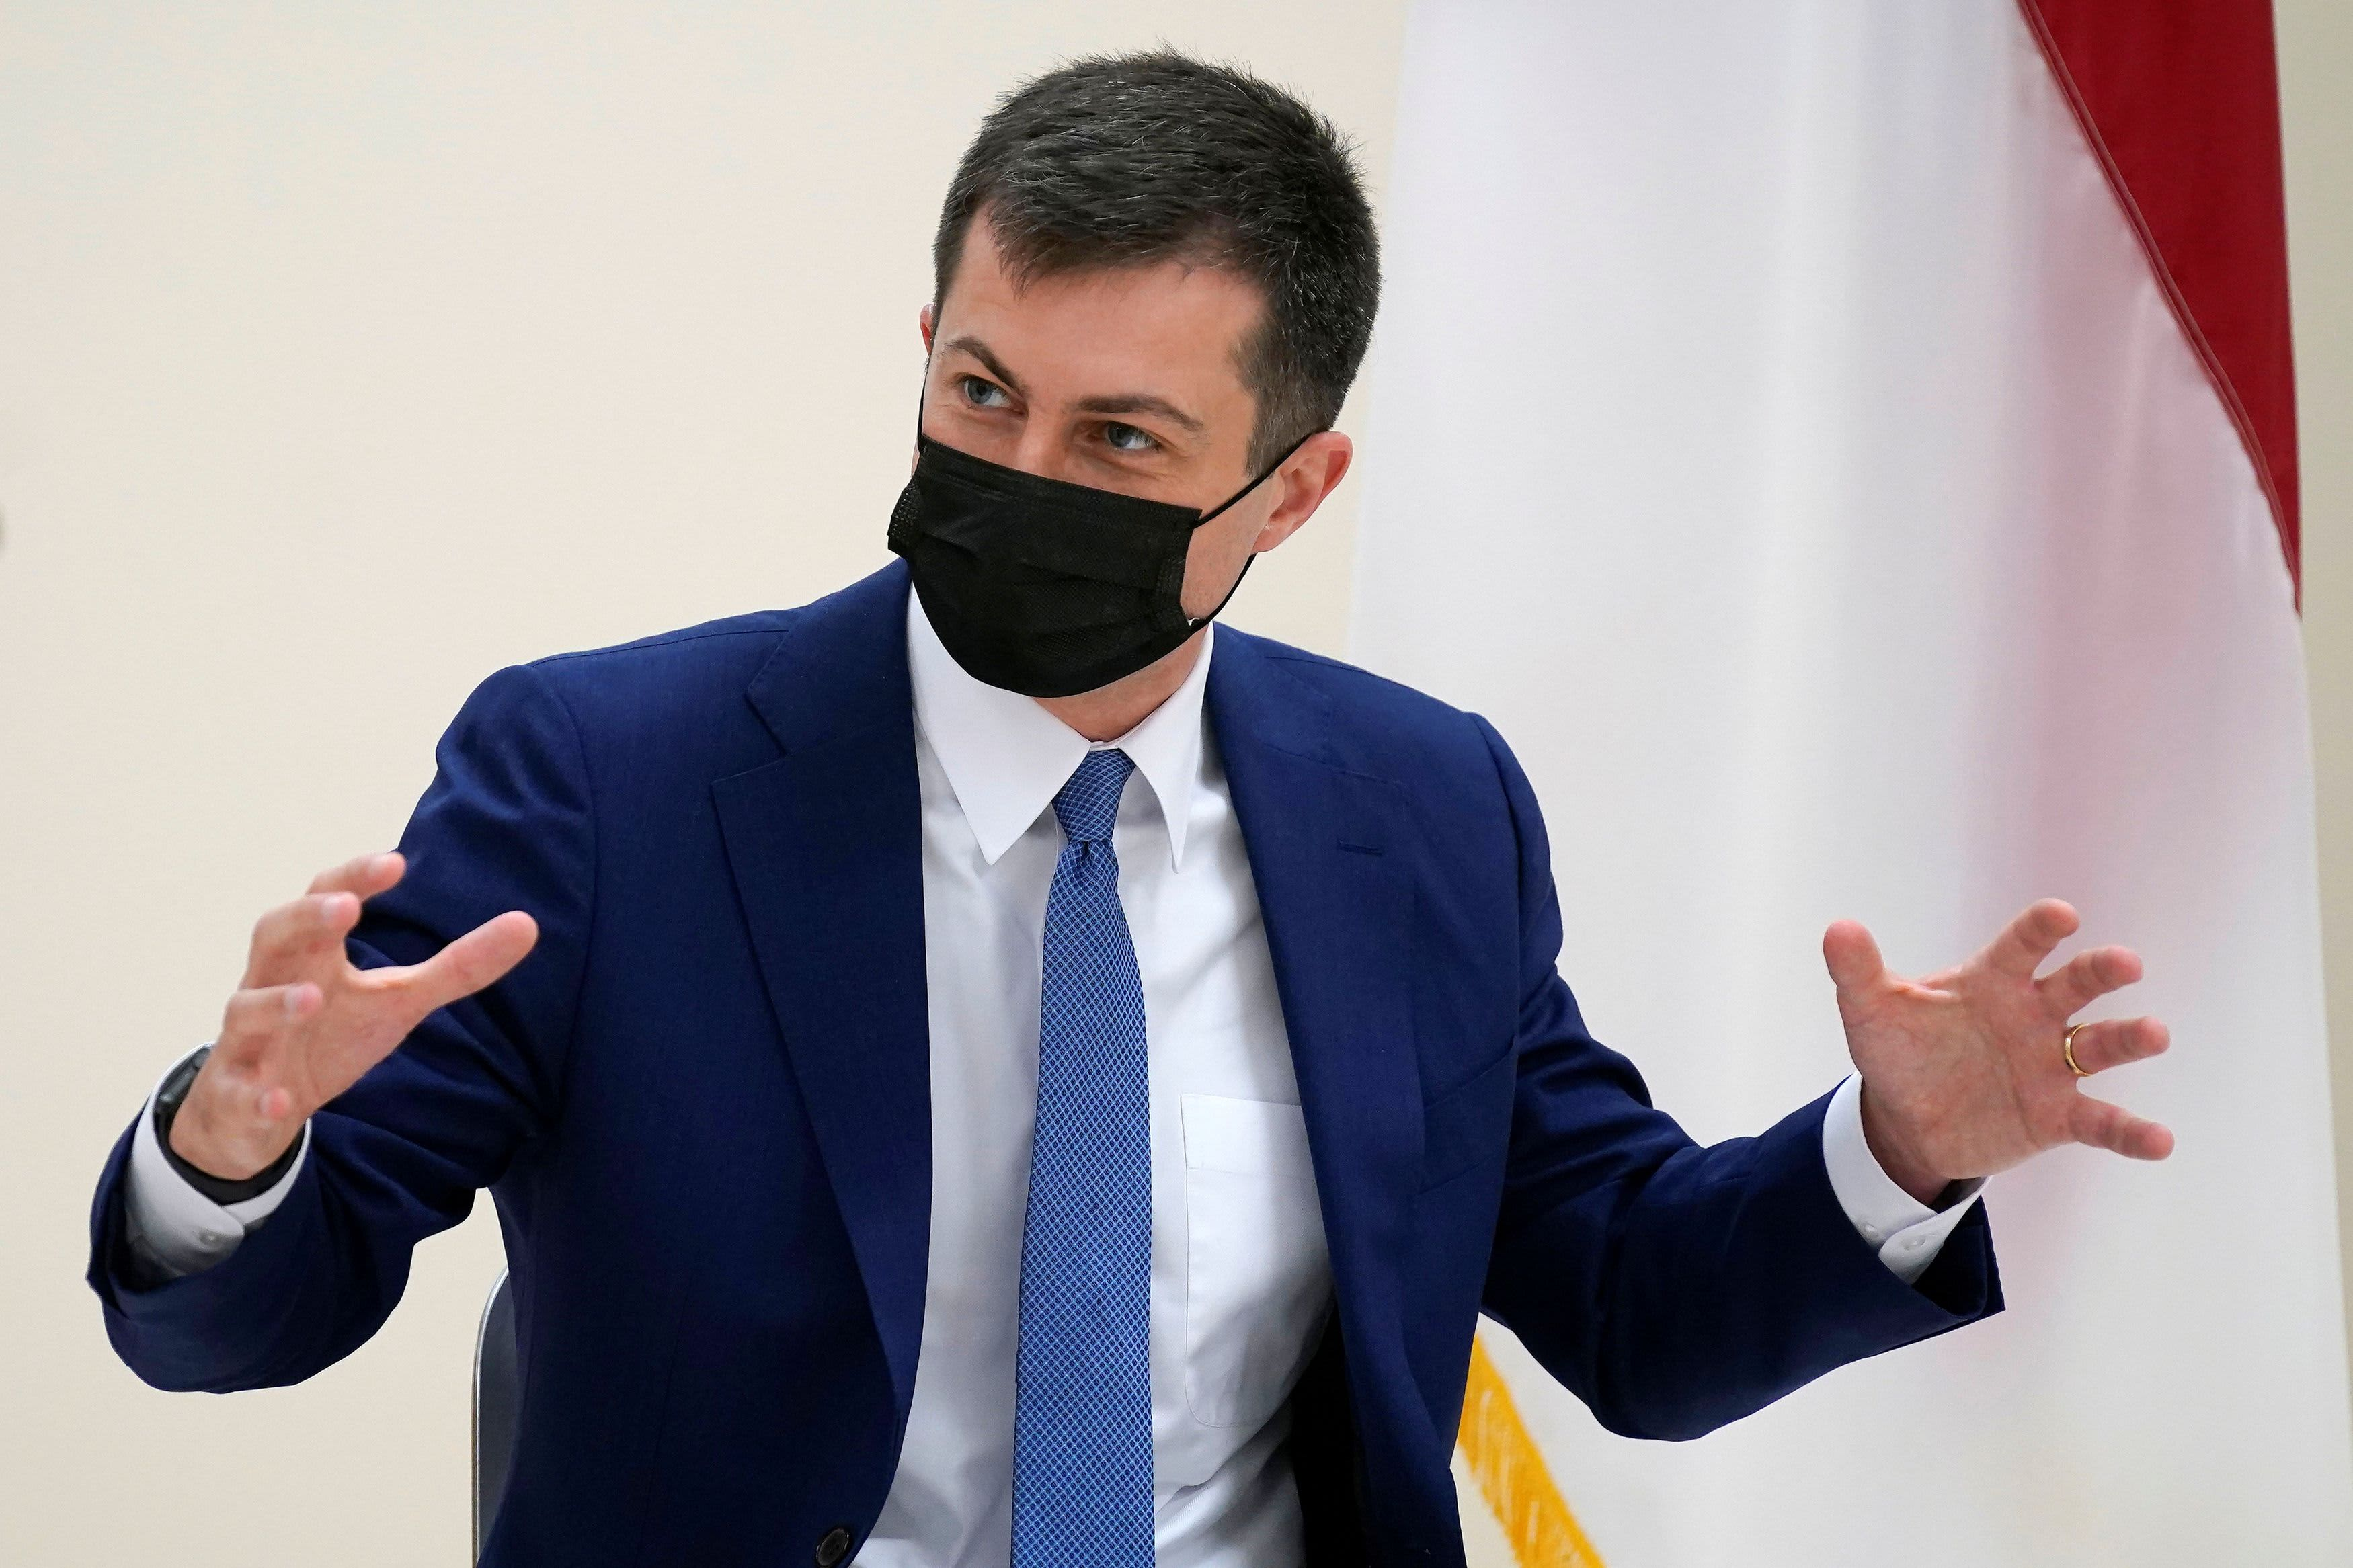 Colonial Pipeline hack was 'wakeup call' on U.S. cyber vulnerability, Buttigieg says